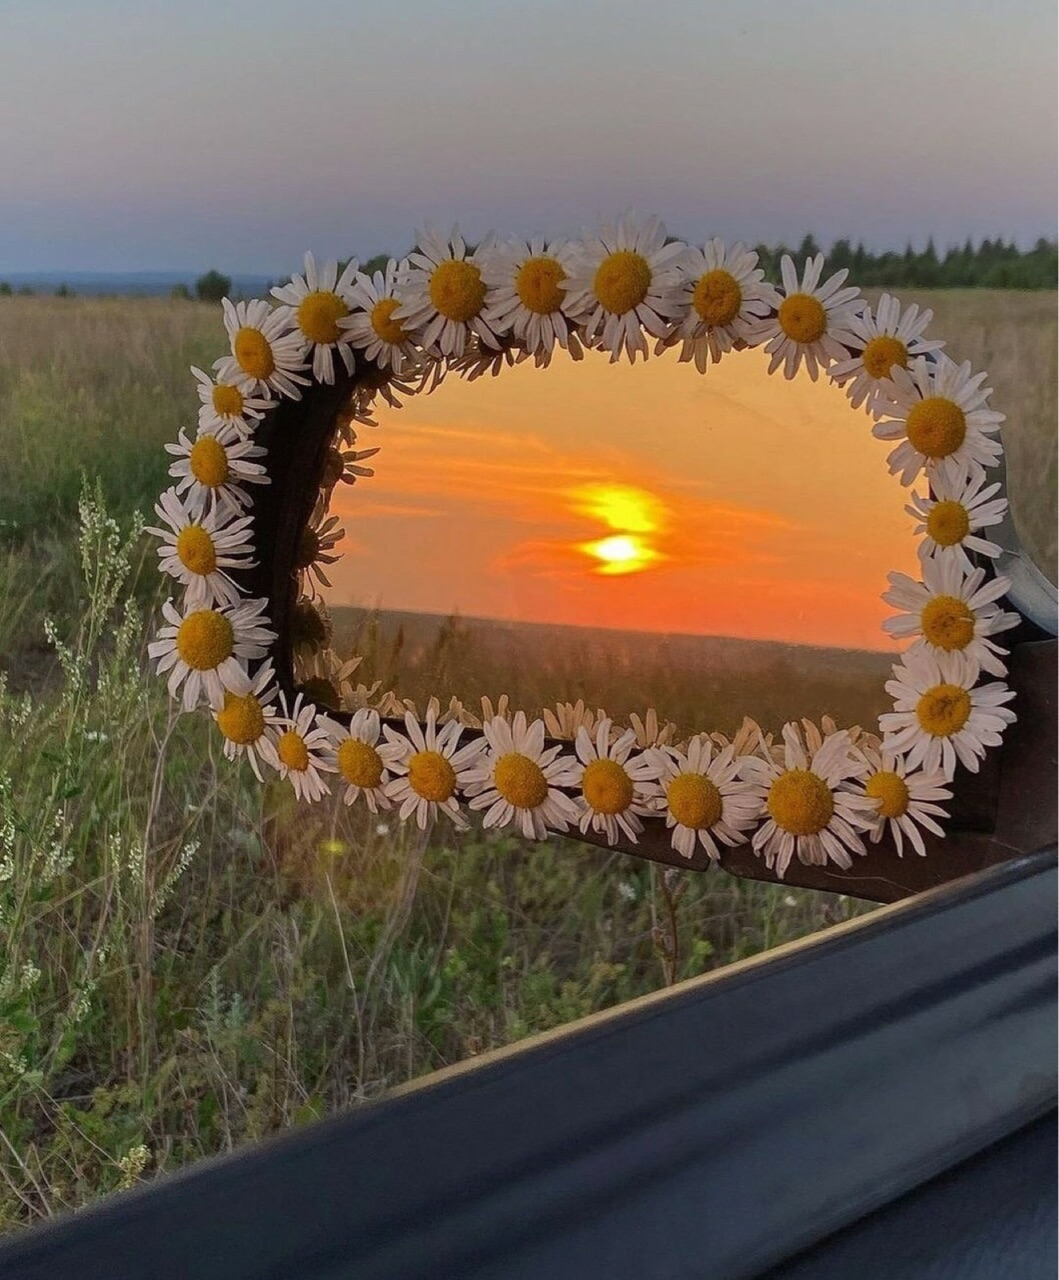 mirror, aesthetic, and car image